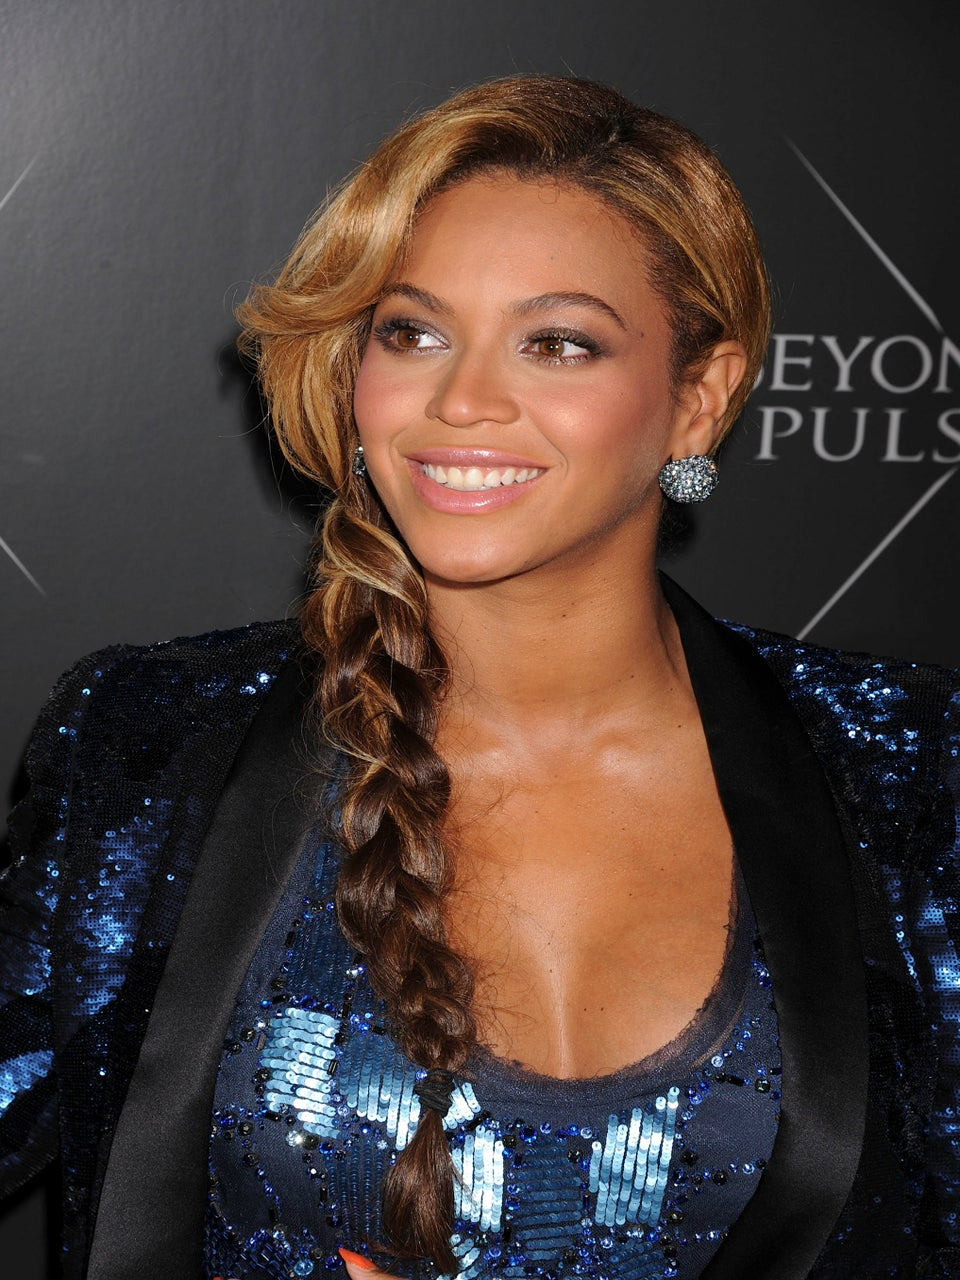 Beyonce is Due in February!